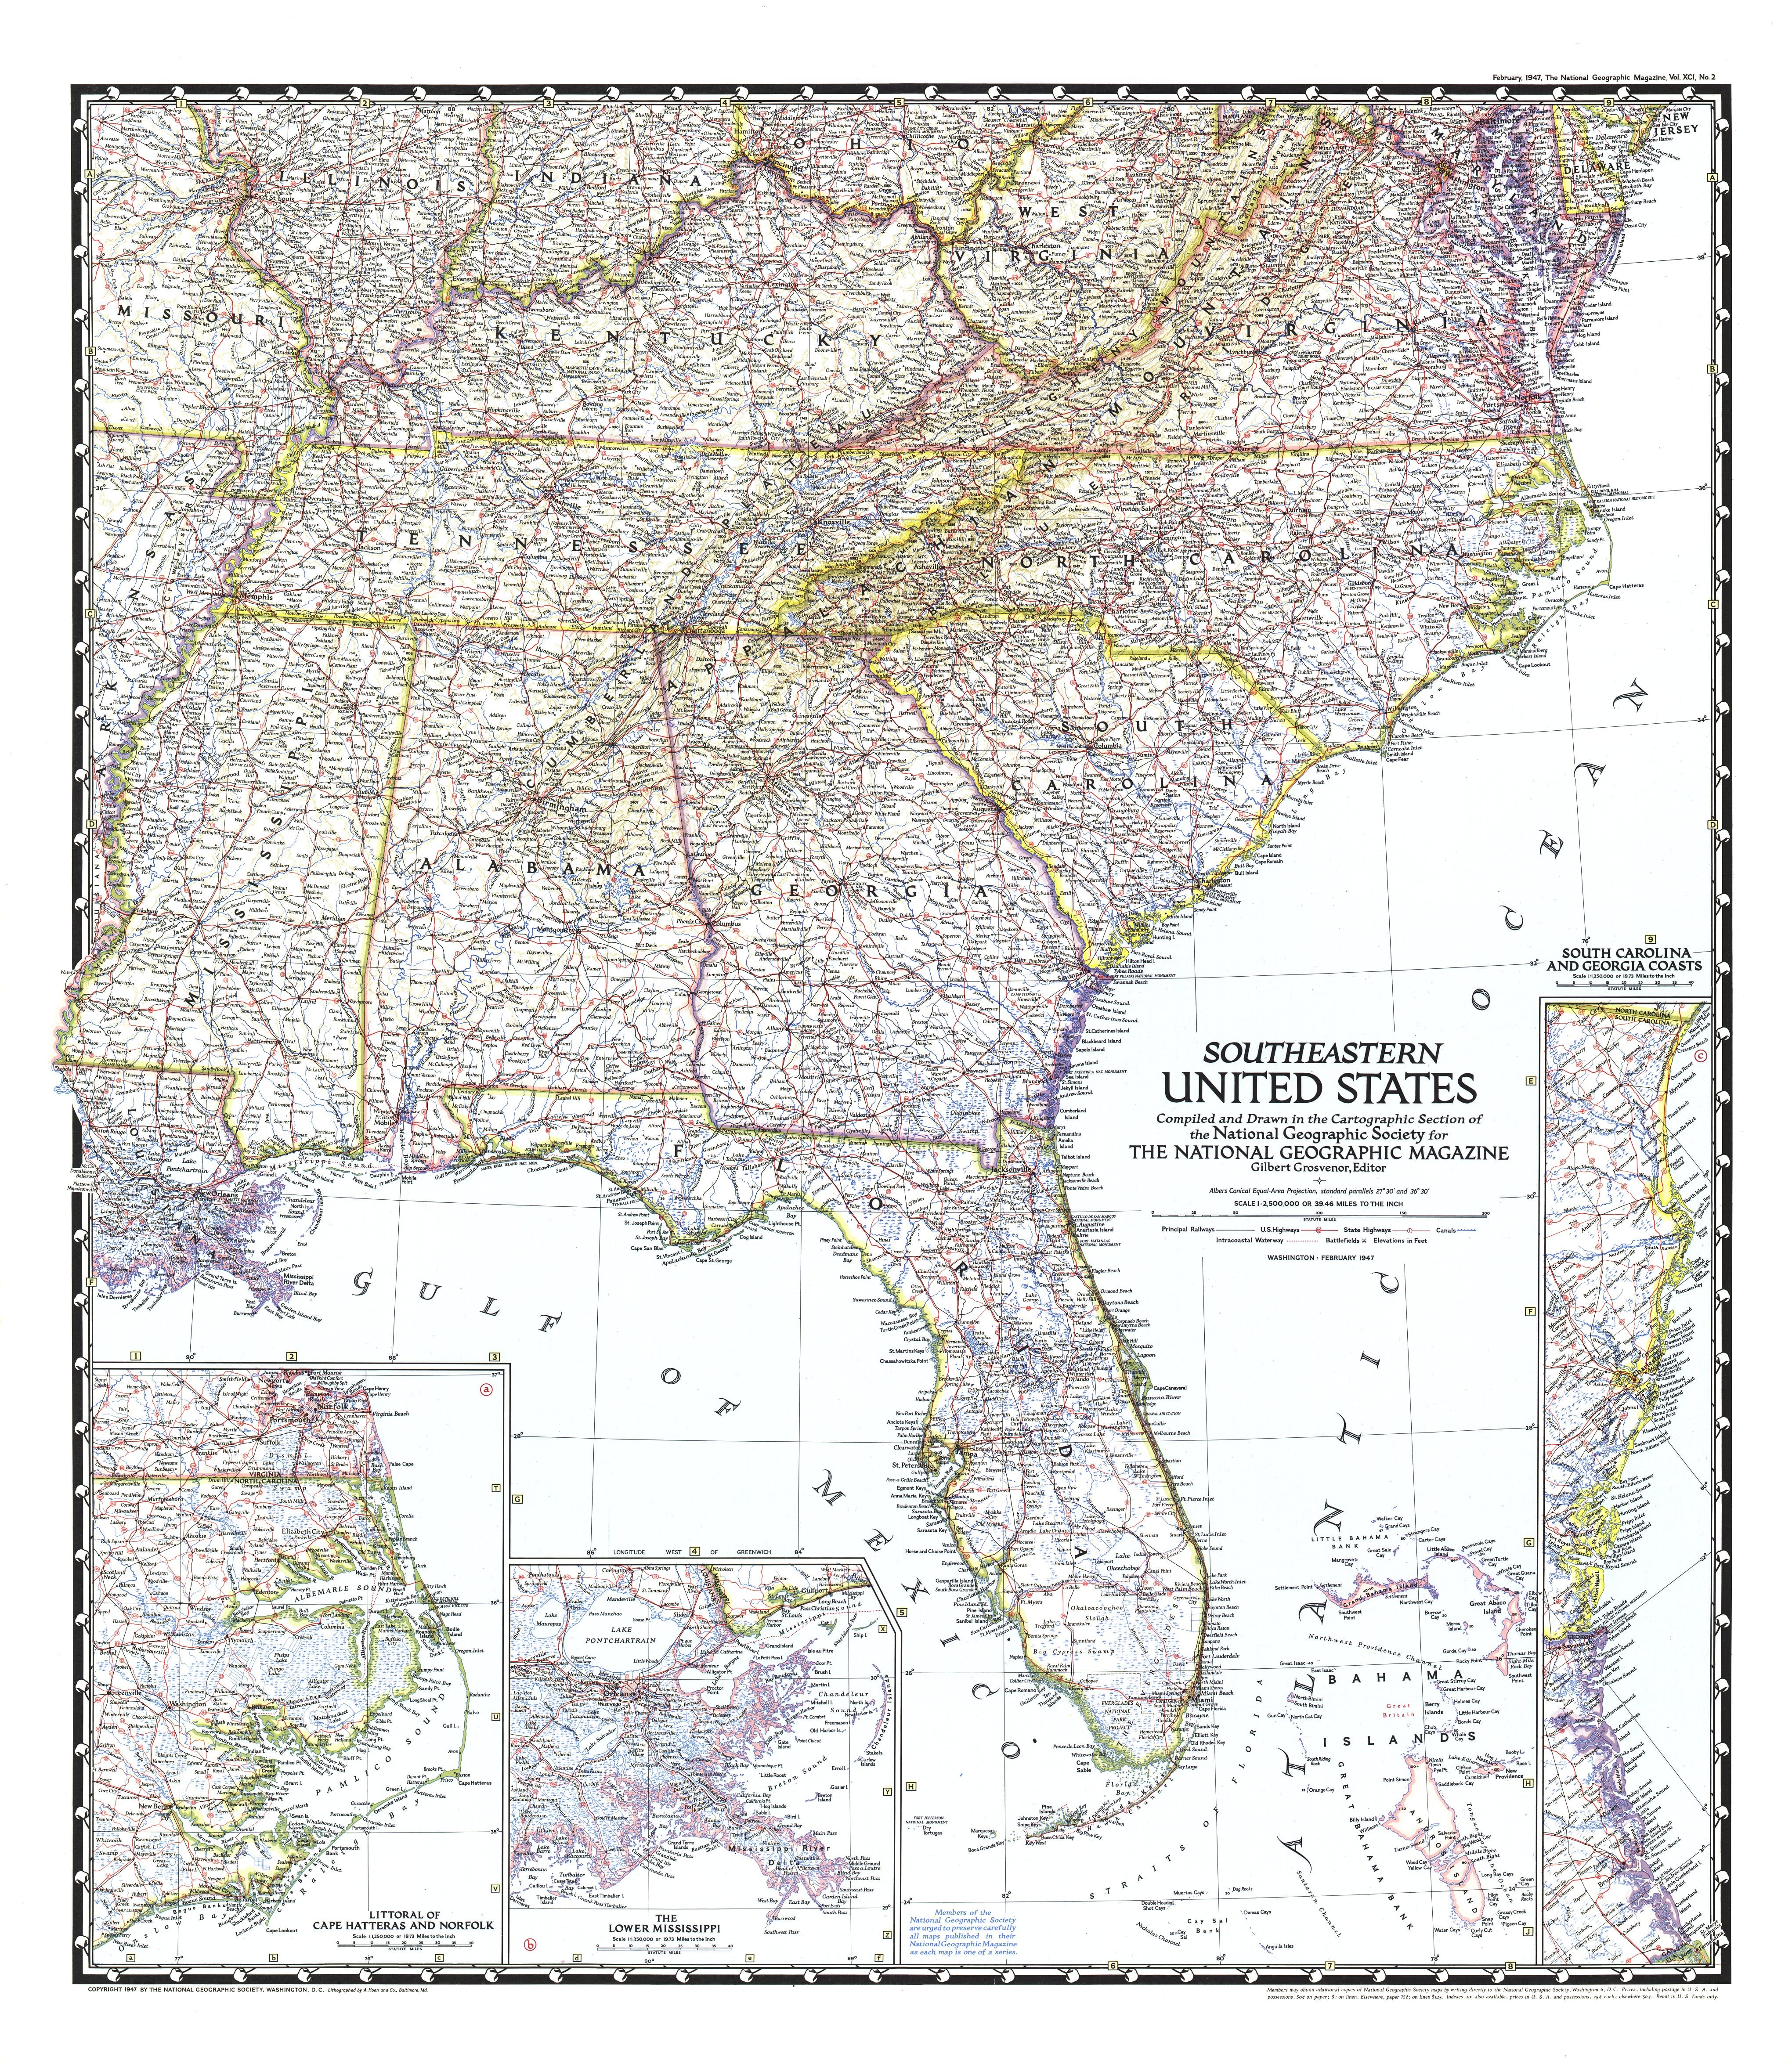 1947 Southeastern United States Map